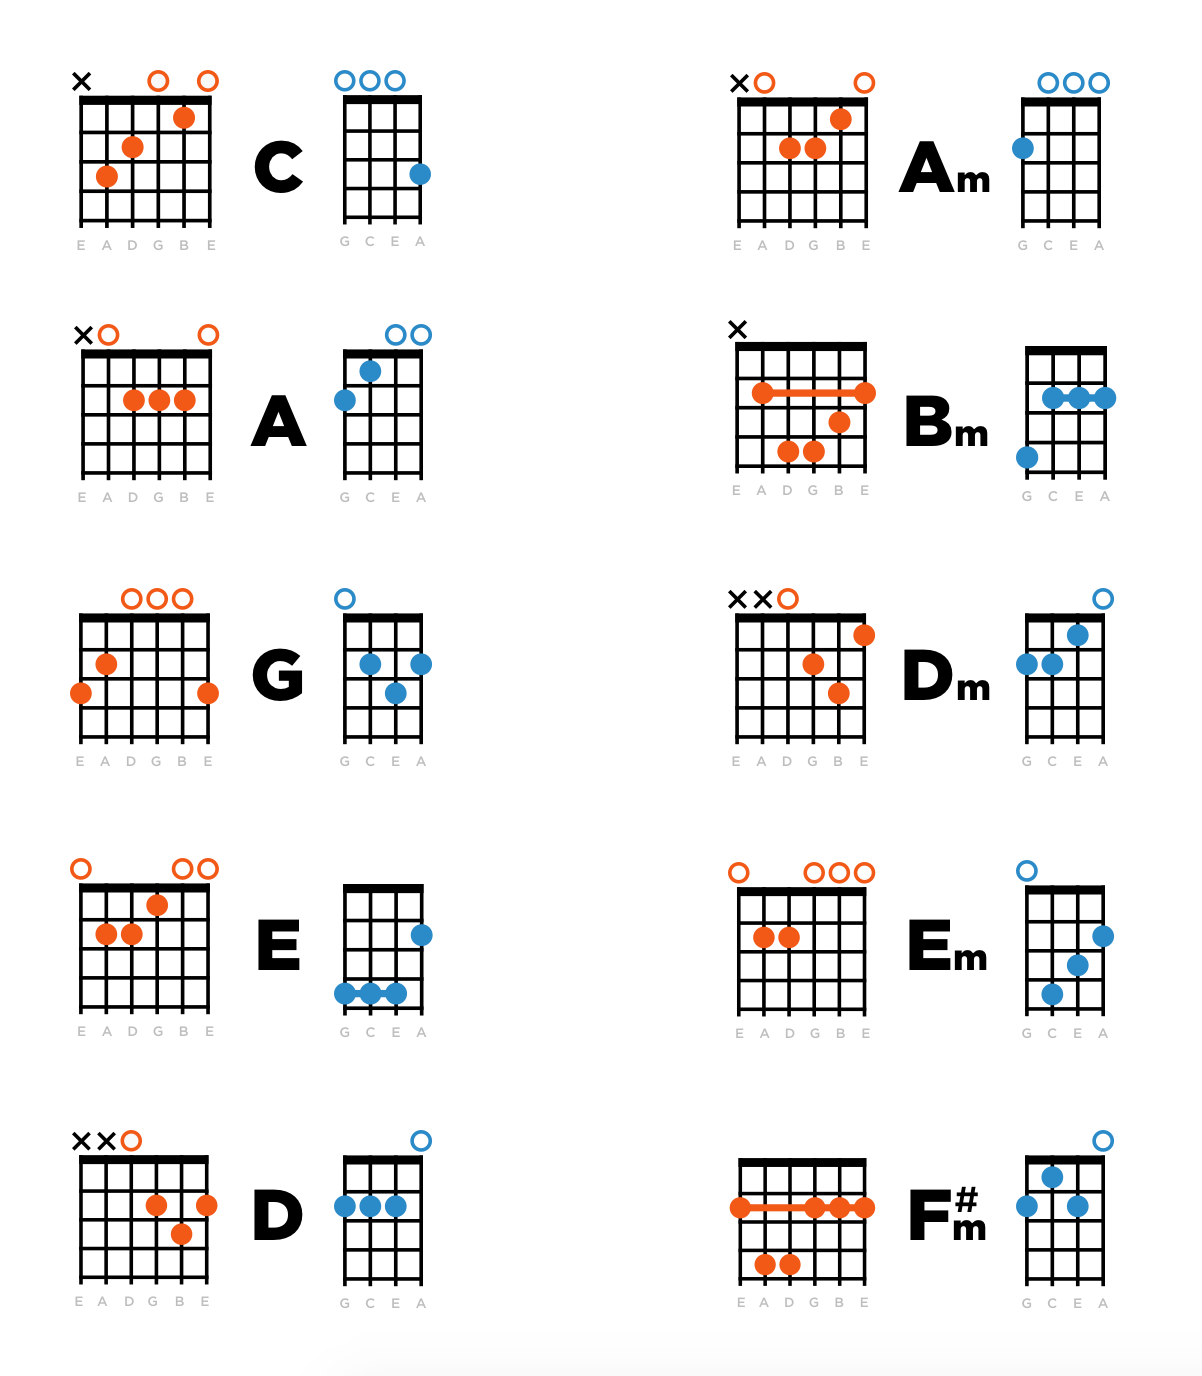 Guitar chords on a ukulele